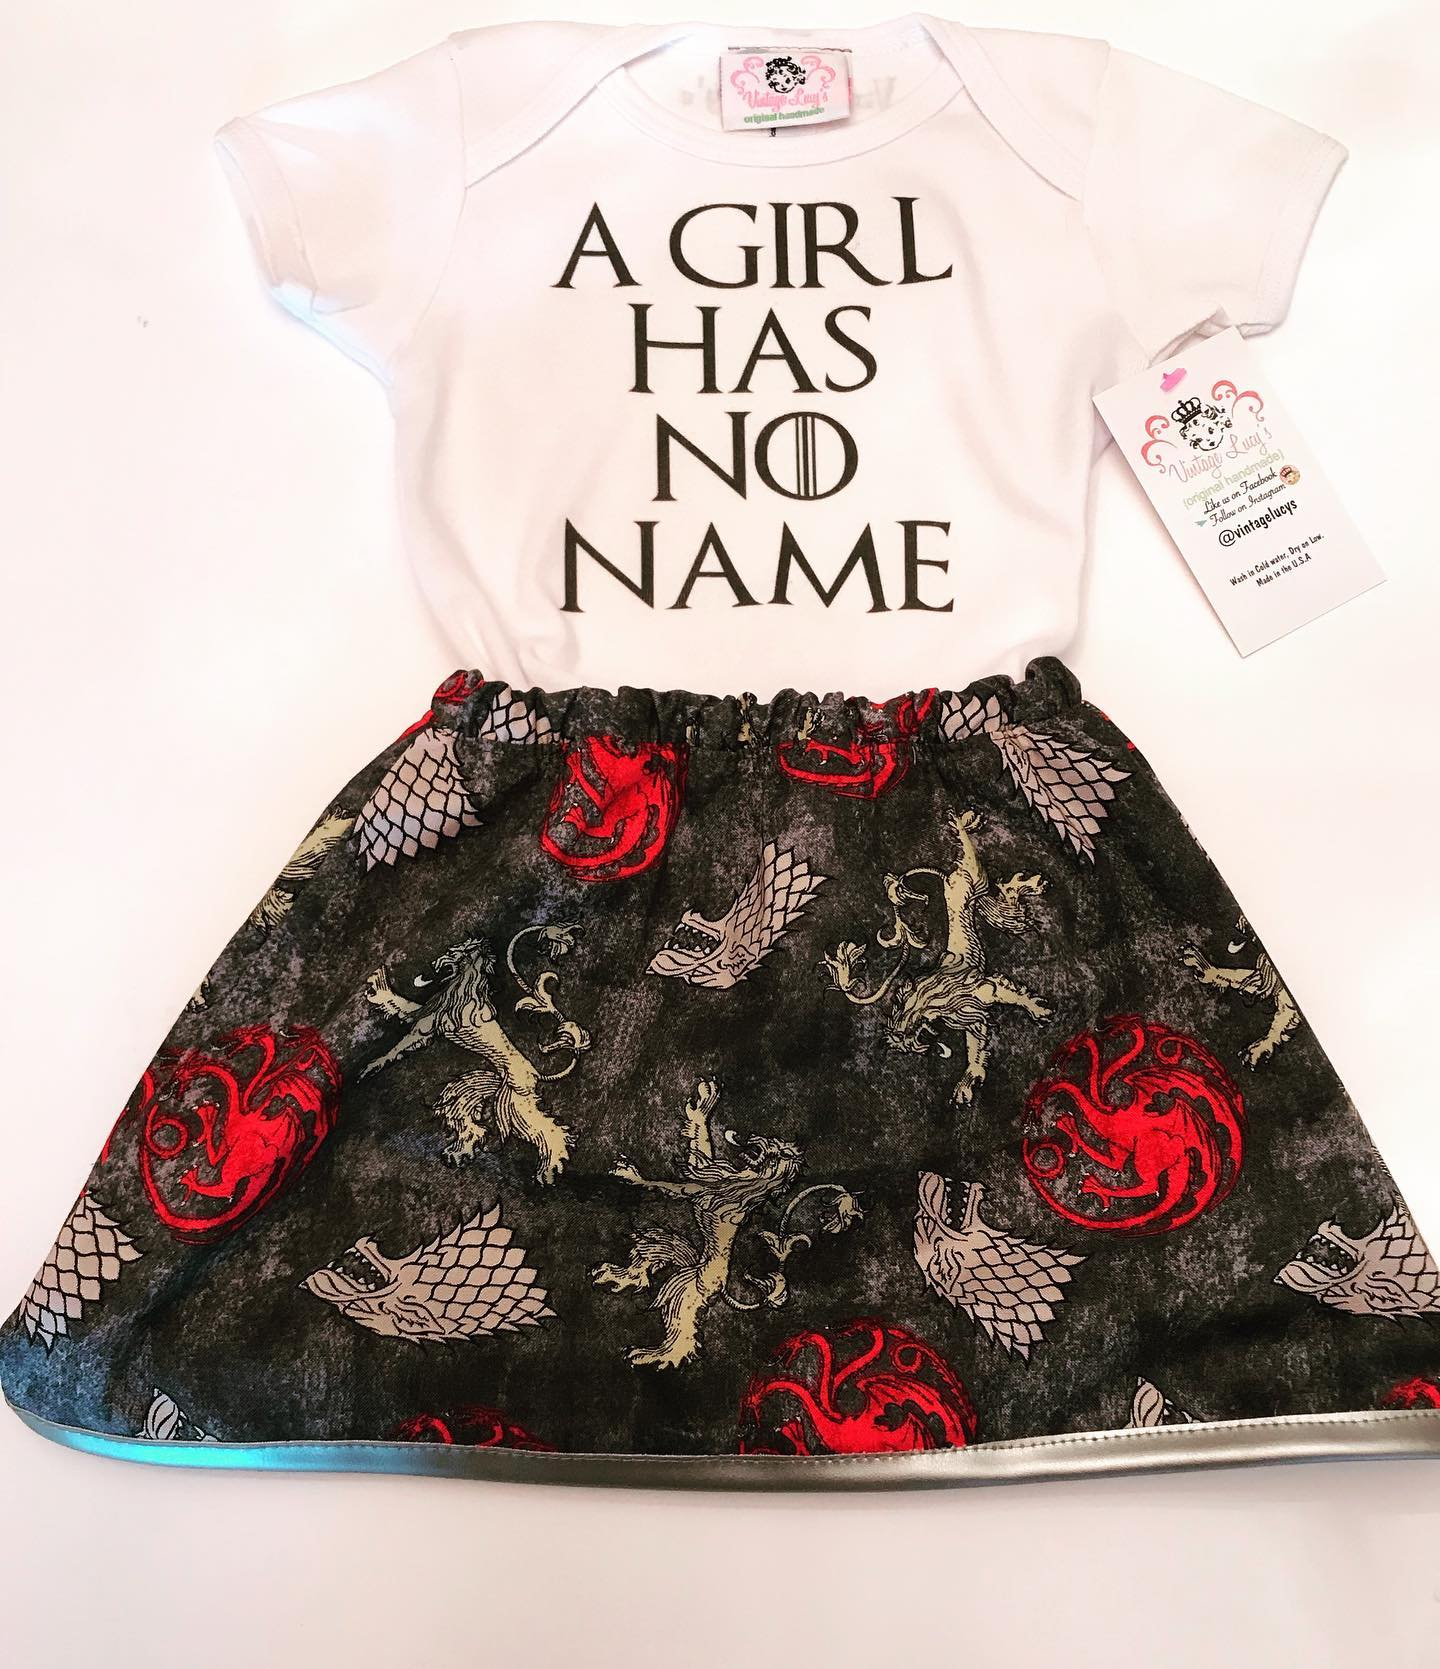 A girl has no name